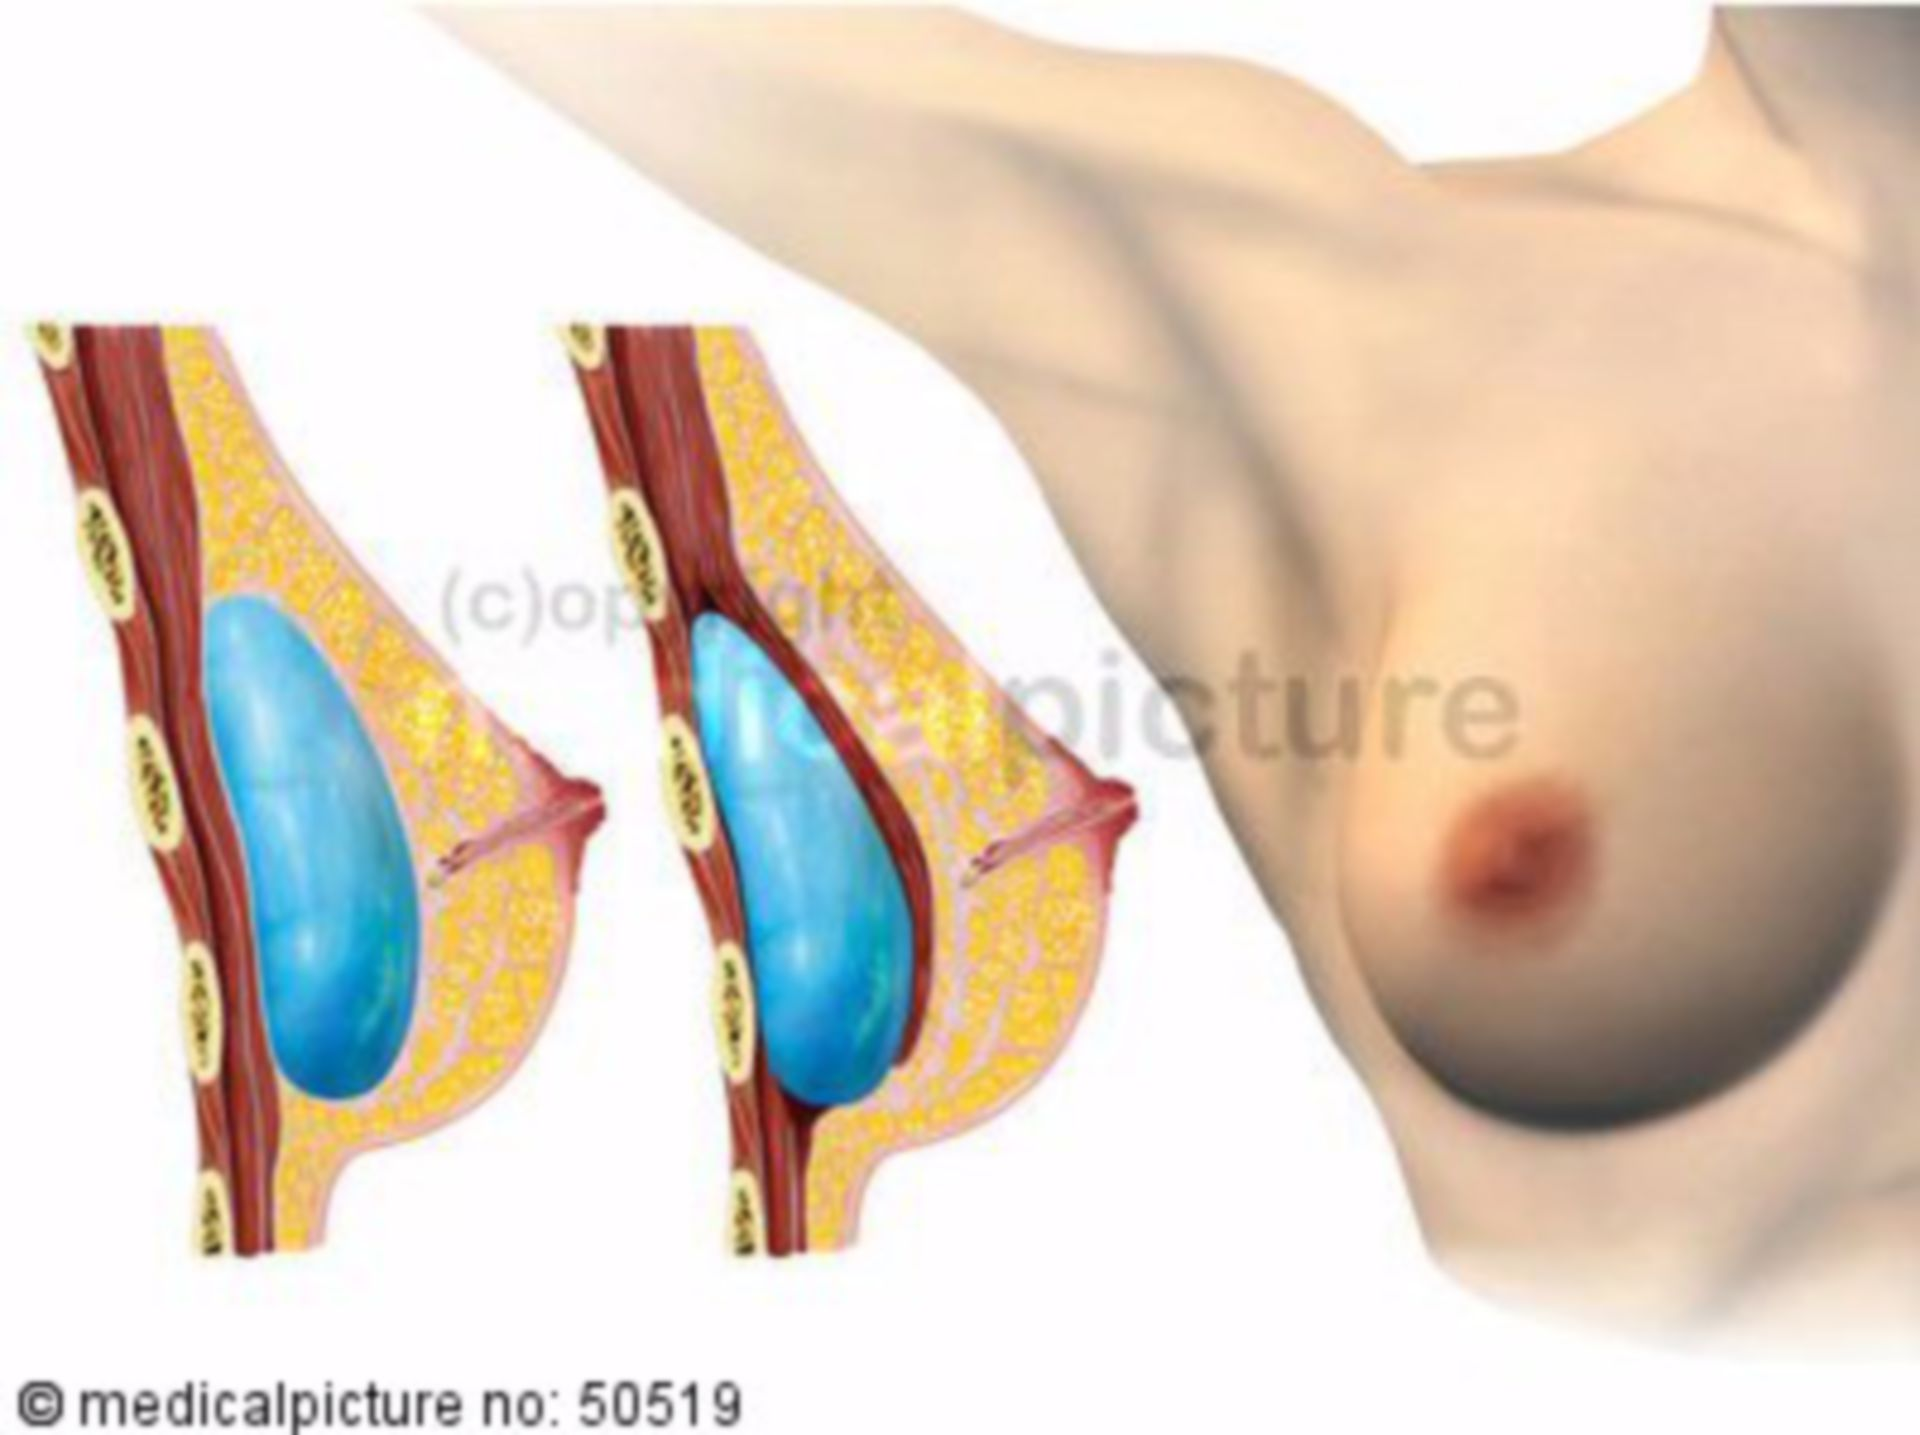 Breast implant/augmentation